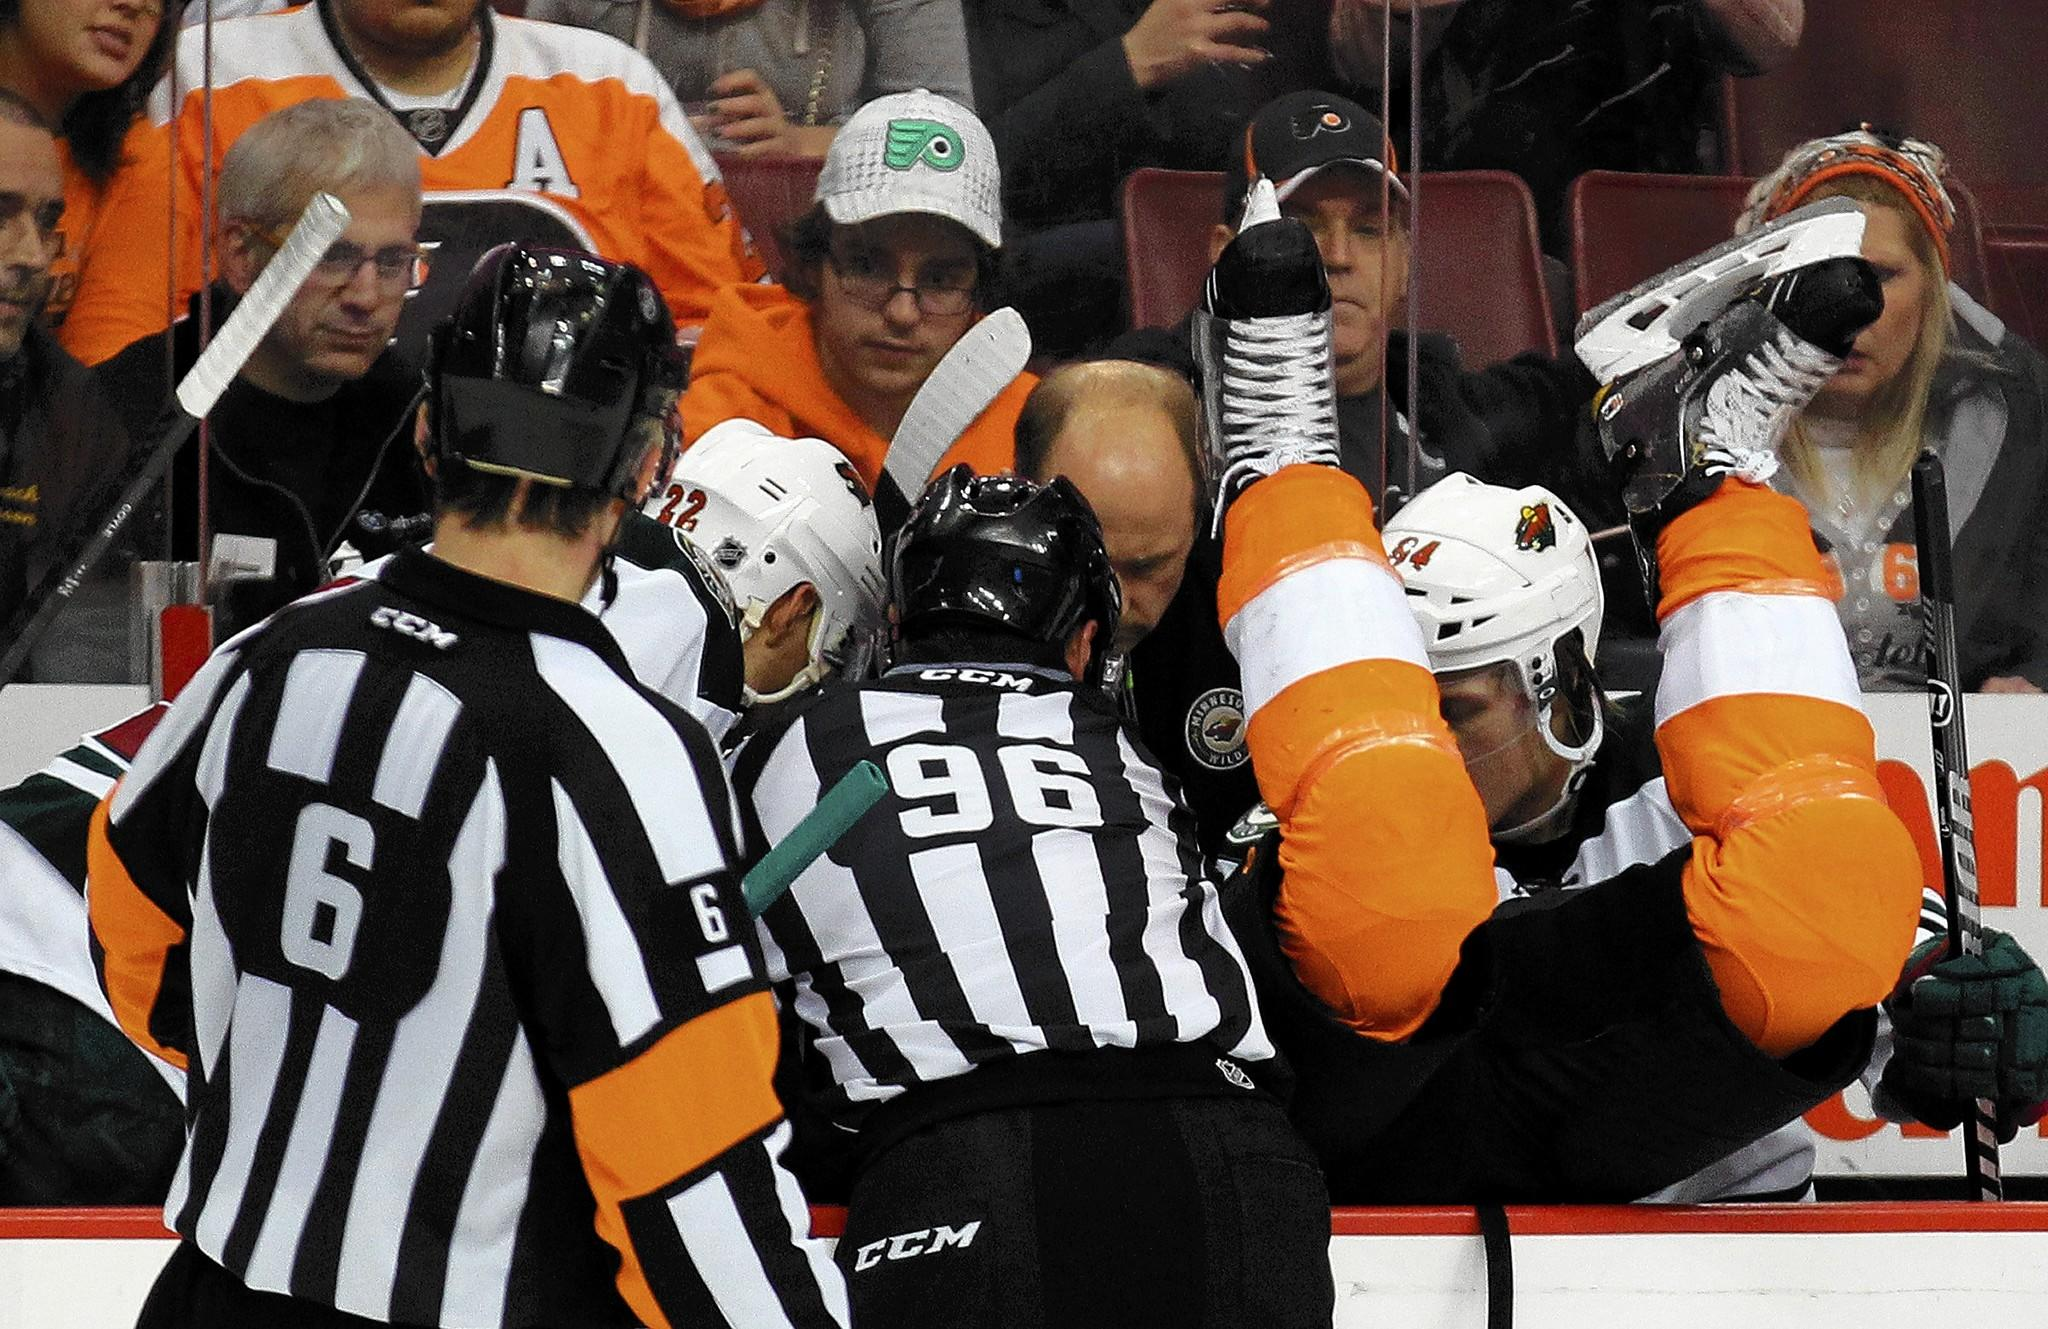 The Philadelphia Flyers' Brayden Schenn goes into the Minnesota Wild bench during the third period at the Wells Fargo Center in Philadephia.